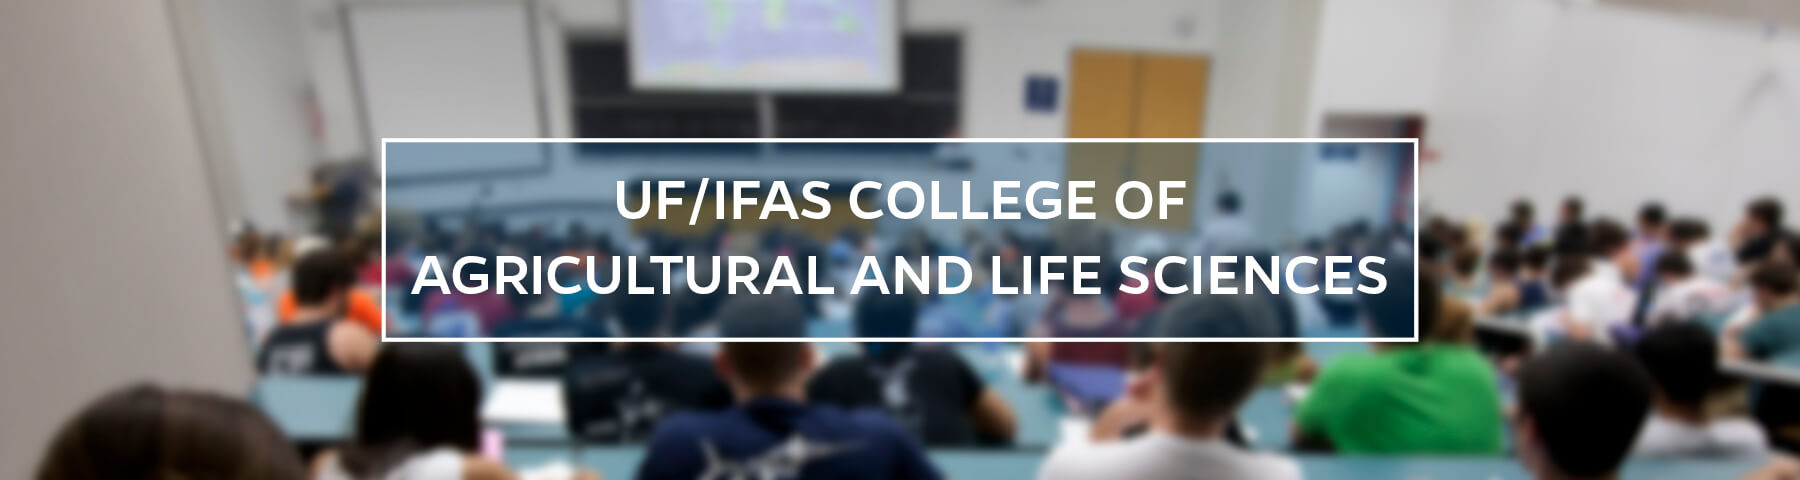 UF/IFAS College of Agricultural and Life Sciences